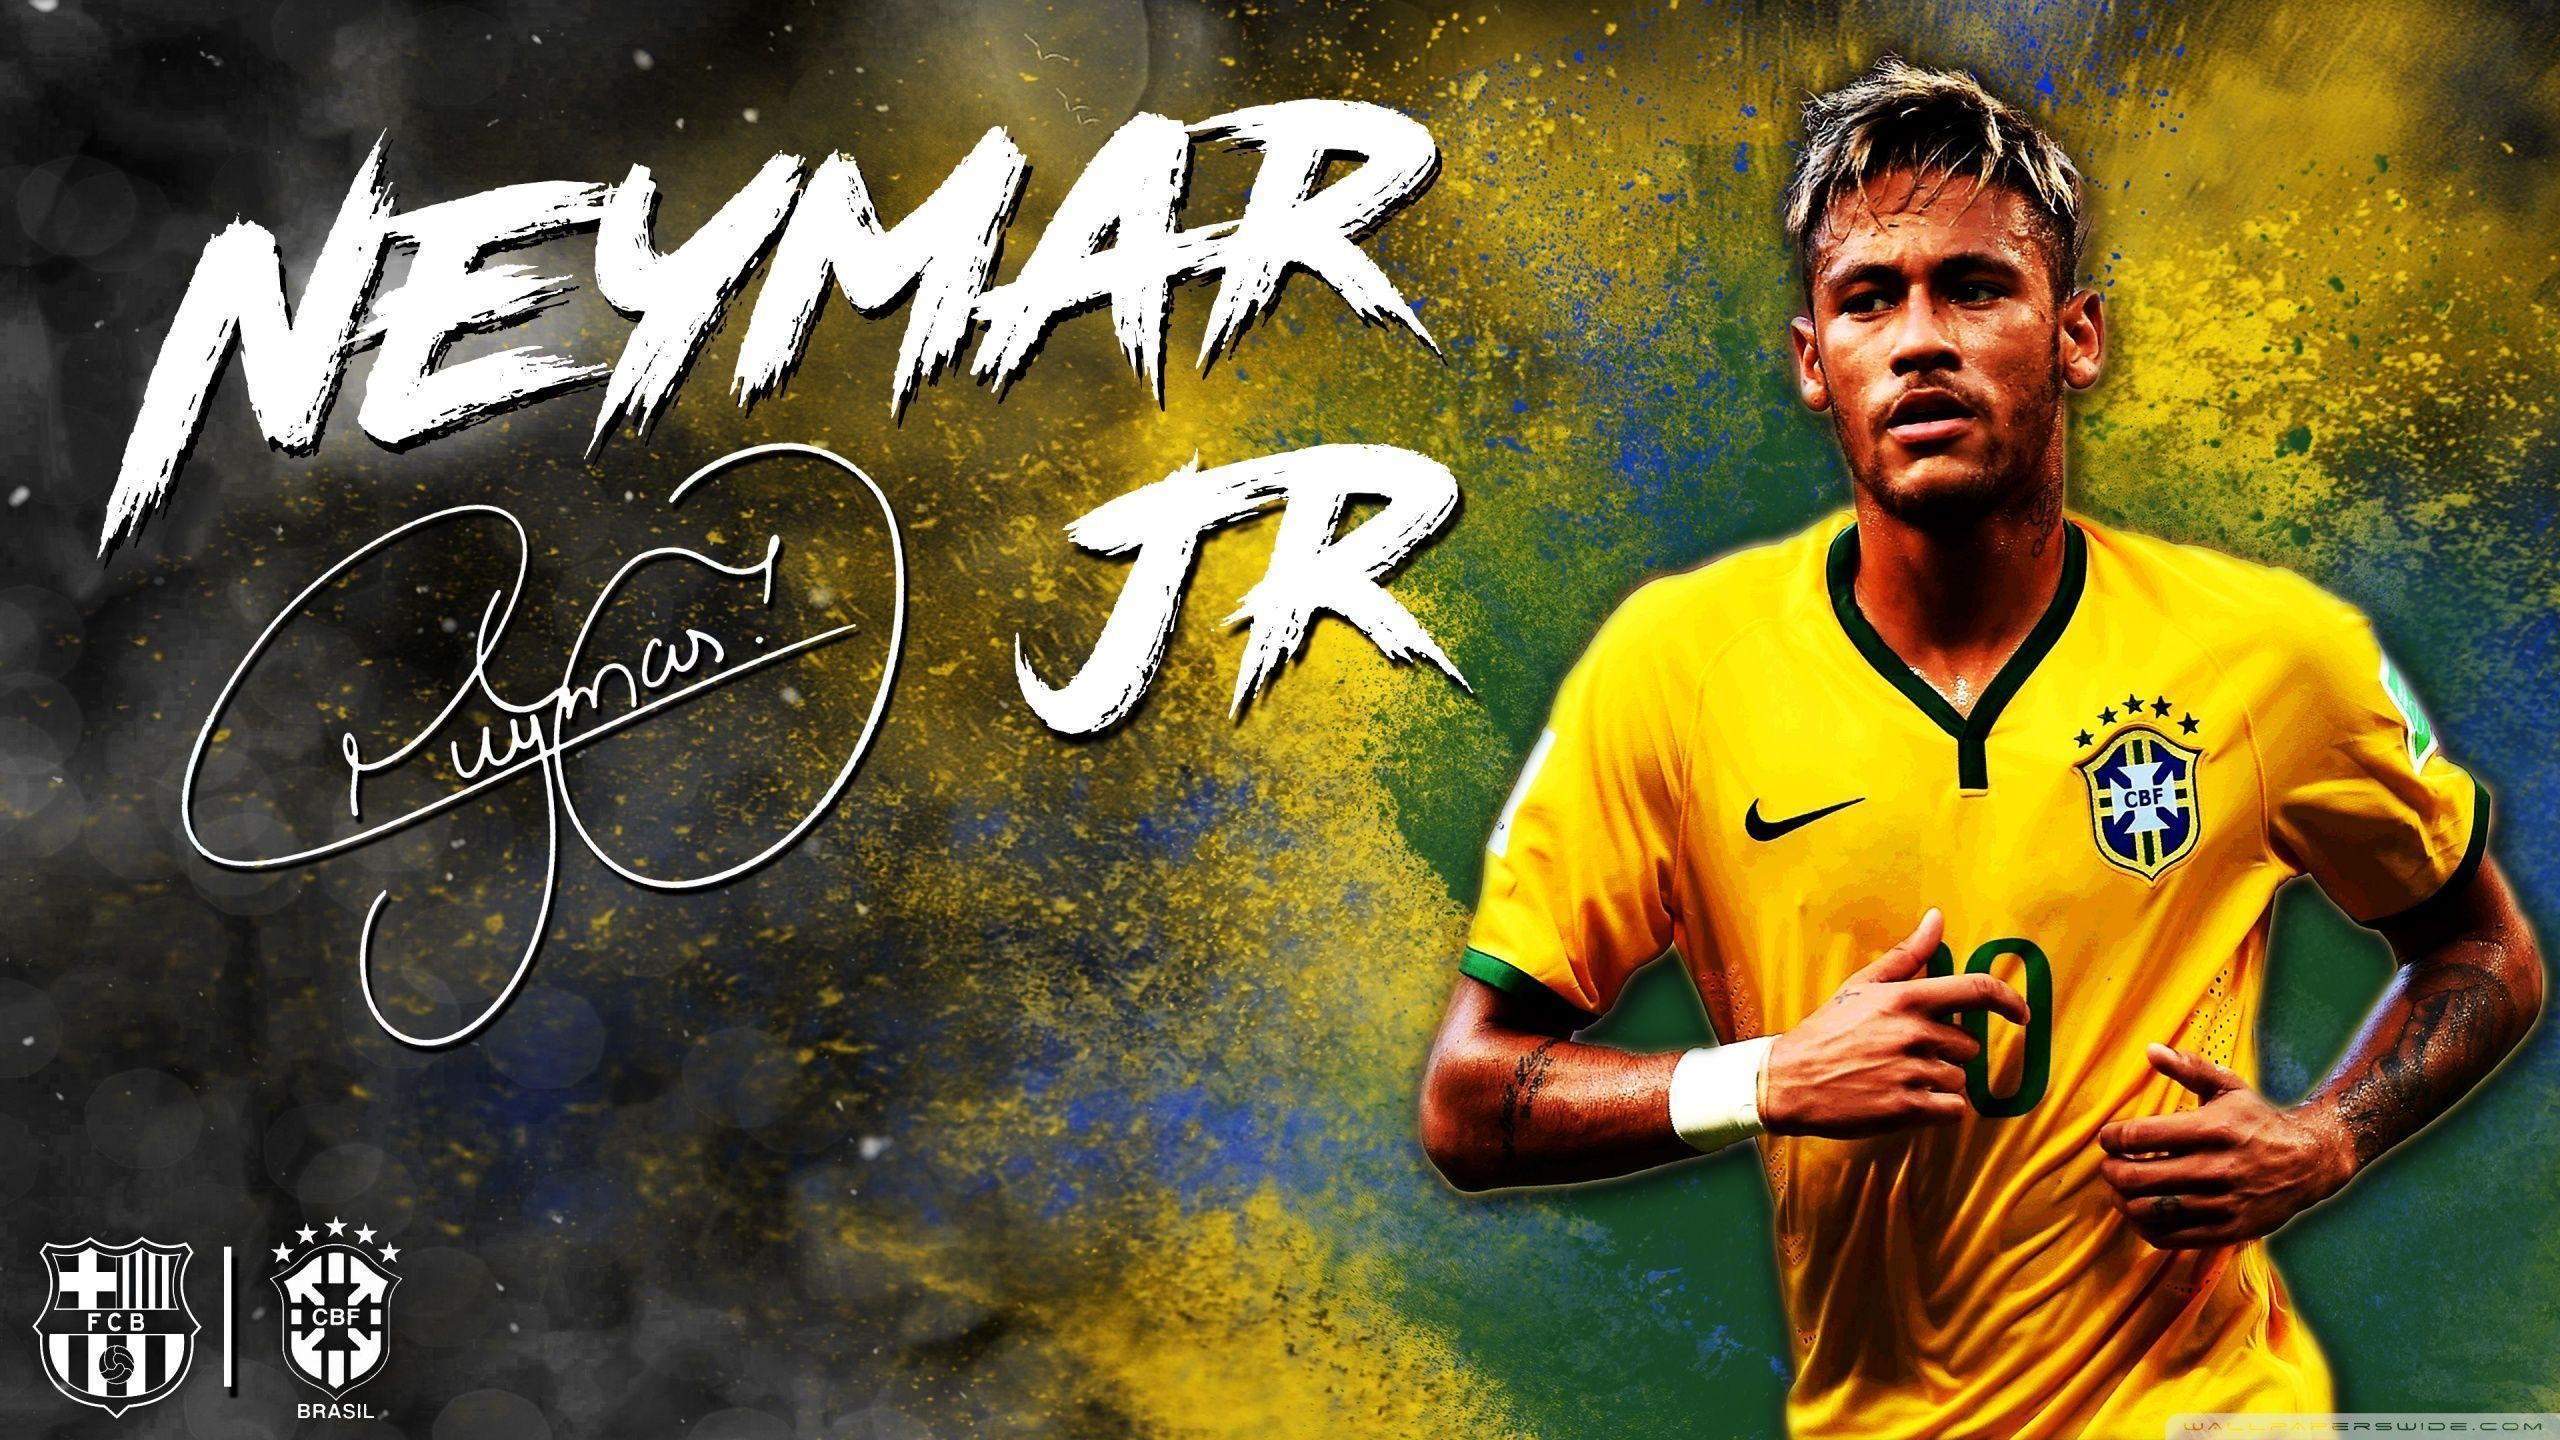 Neymar jr wallpapers wallpaper cave - Brazil football hd wallpapers 2018 ...